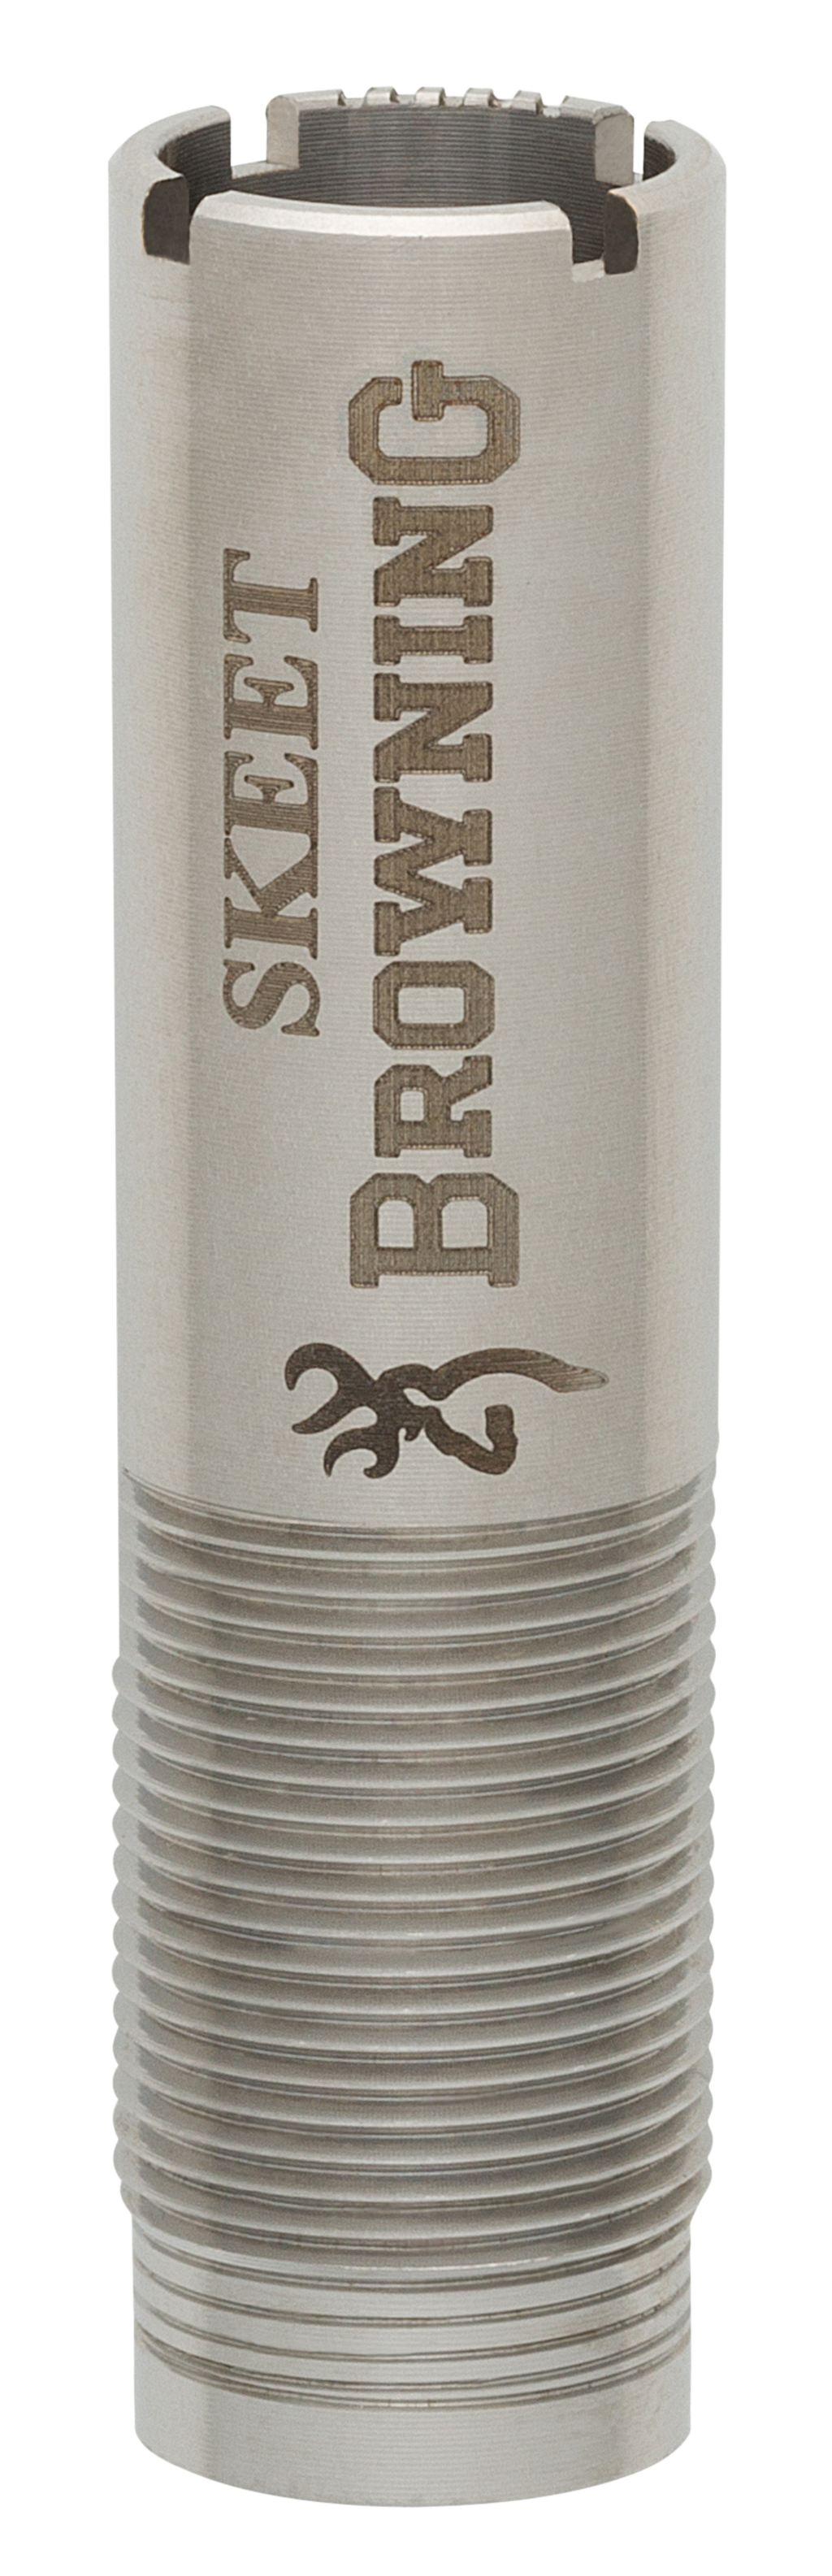 Browning Invector Standard-img-0